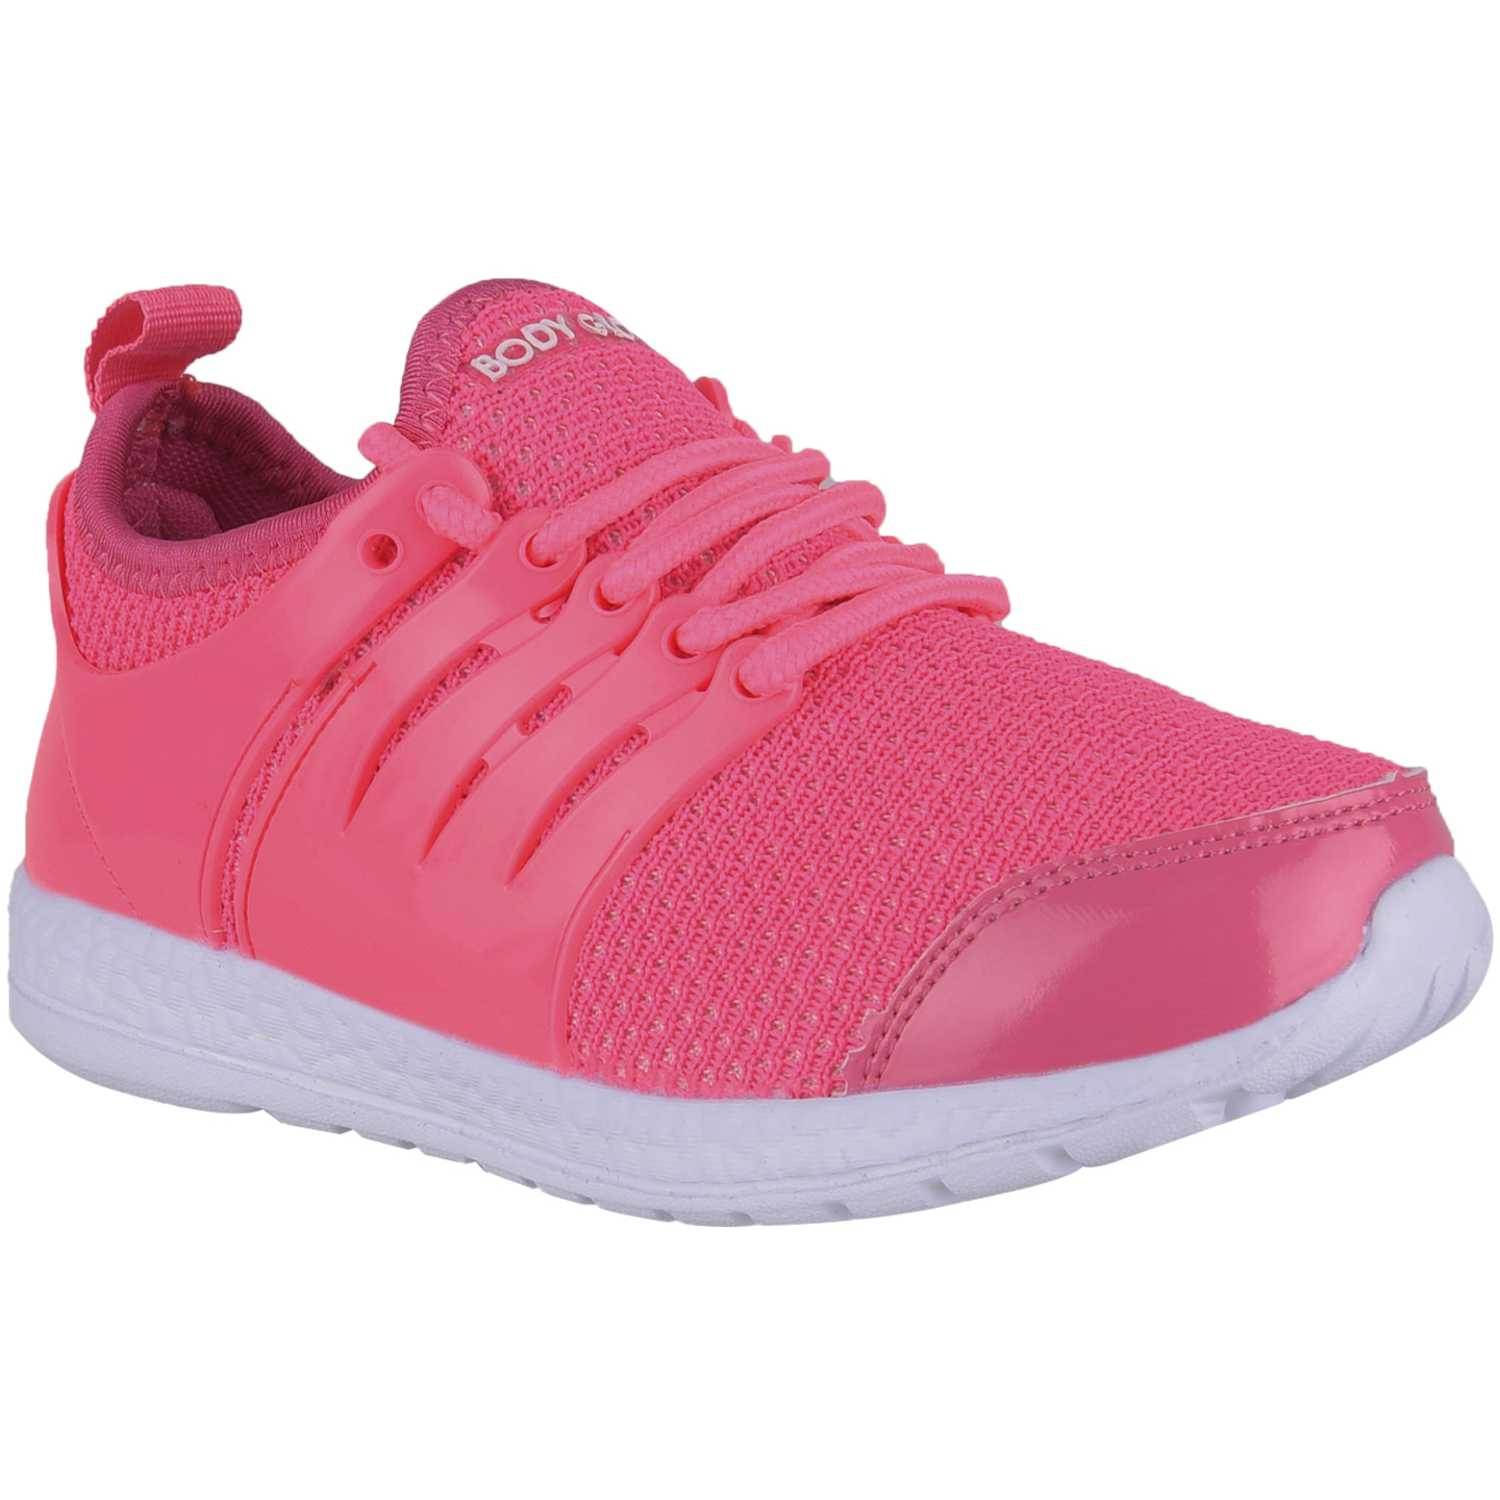 Body Glove Z 5004G Fucsia Zapatillas